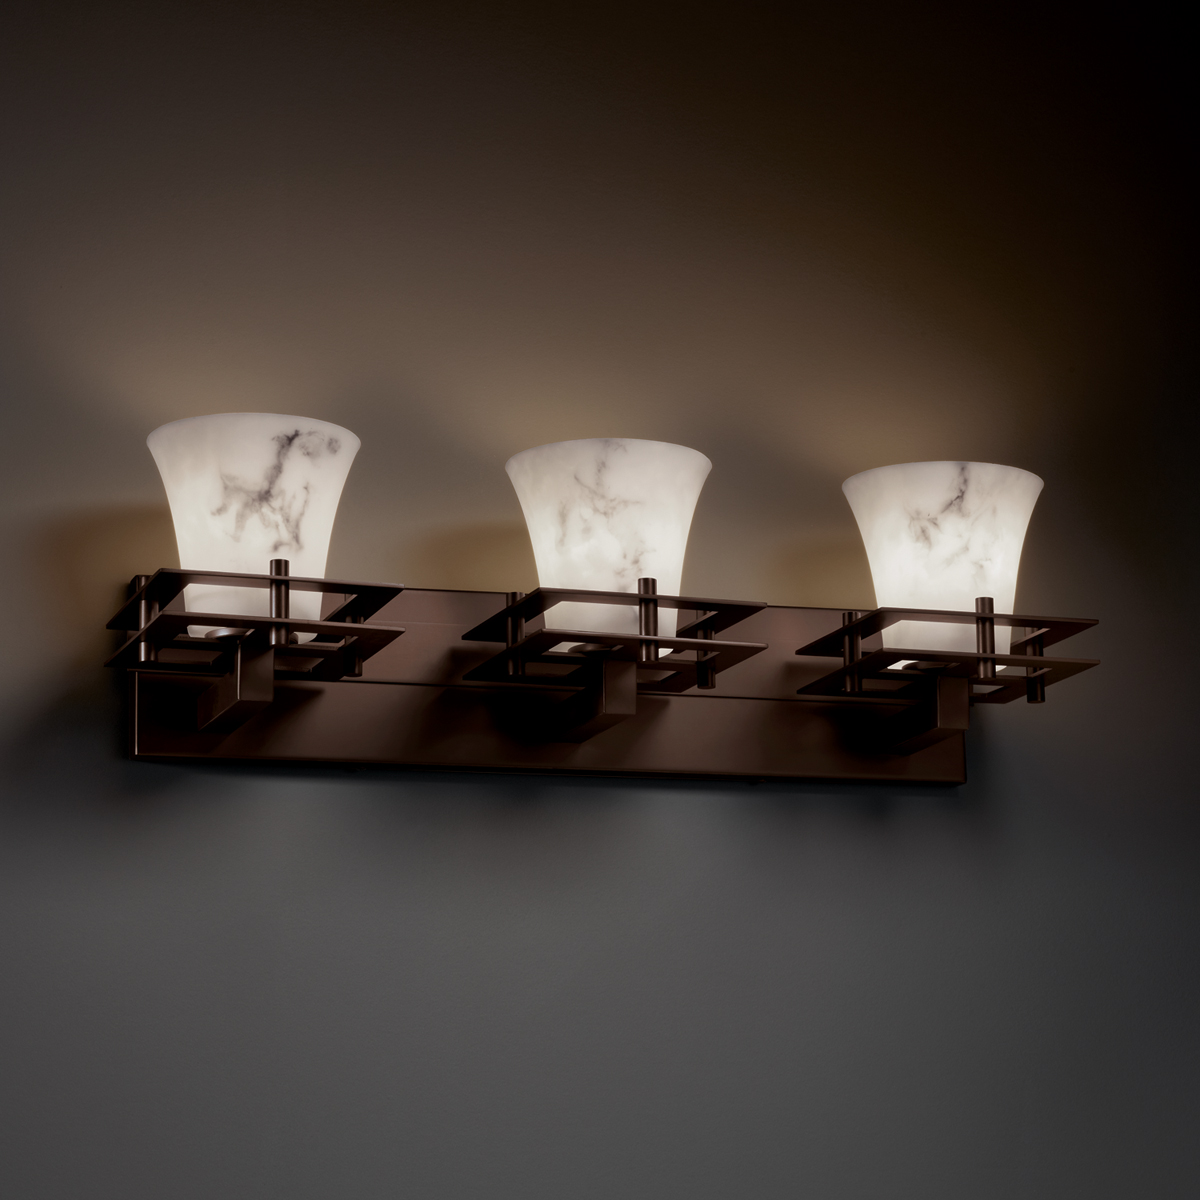 Justice Design (FAL-8173) Metropolis 3-Light Bath Bar from the LumenAria Collection